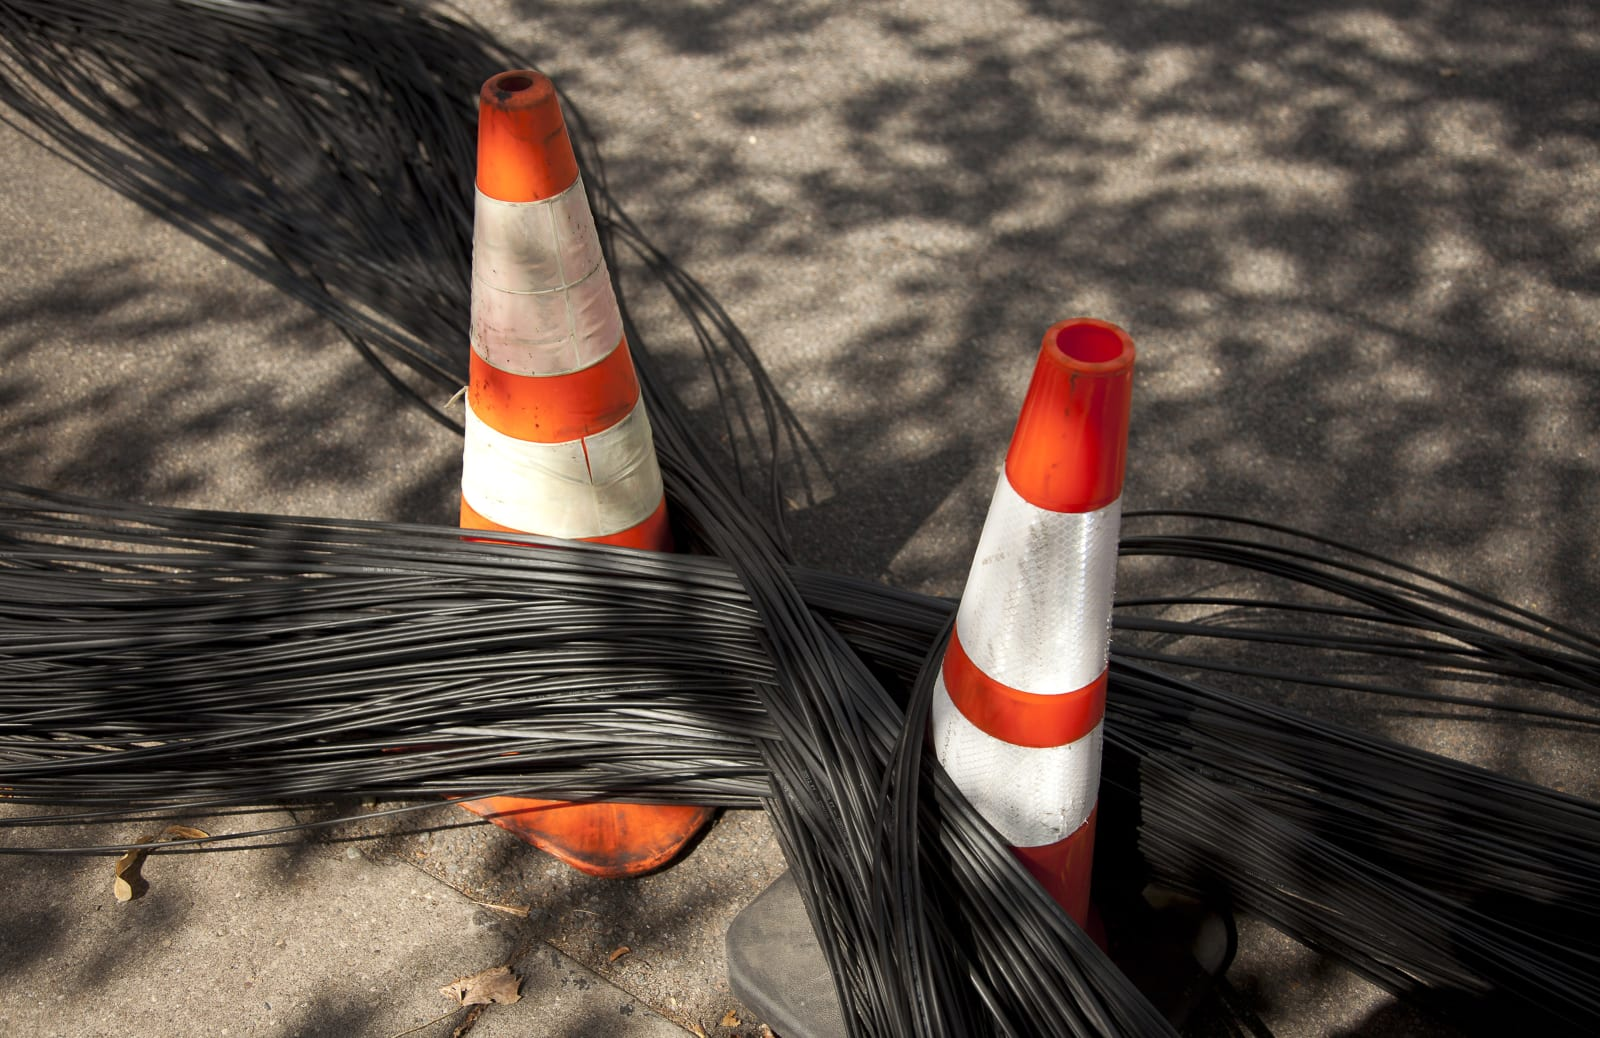 Operations During US Internet Fiber Optic Cable Installations